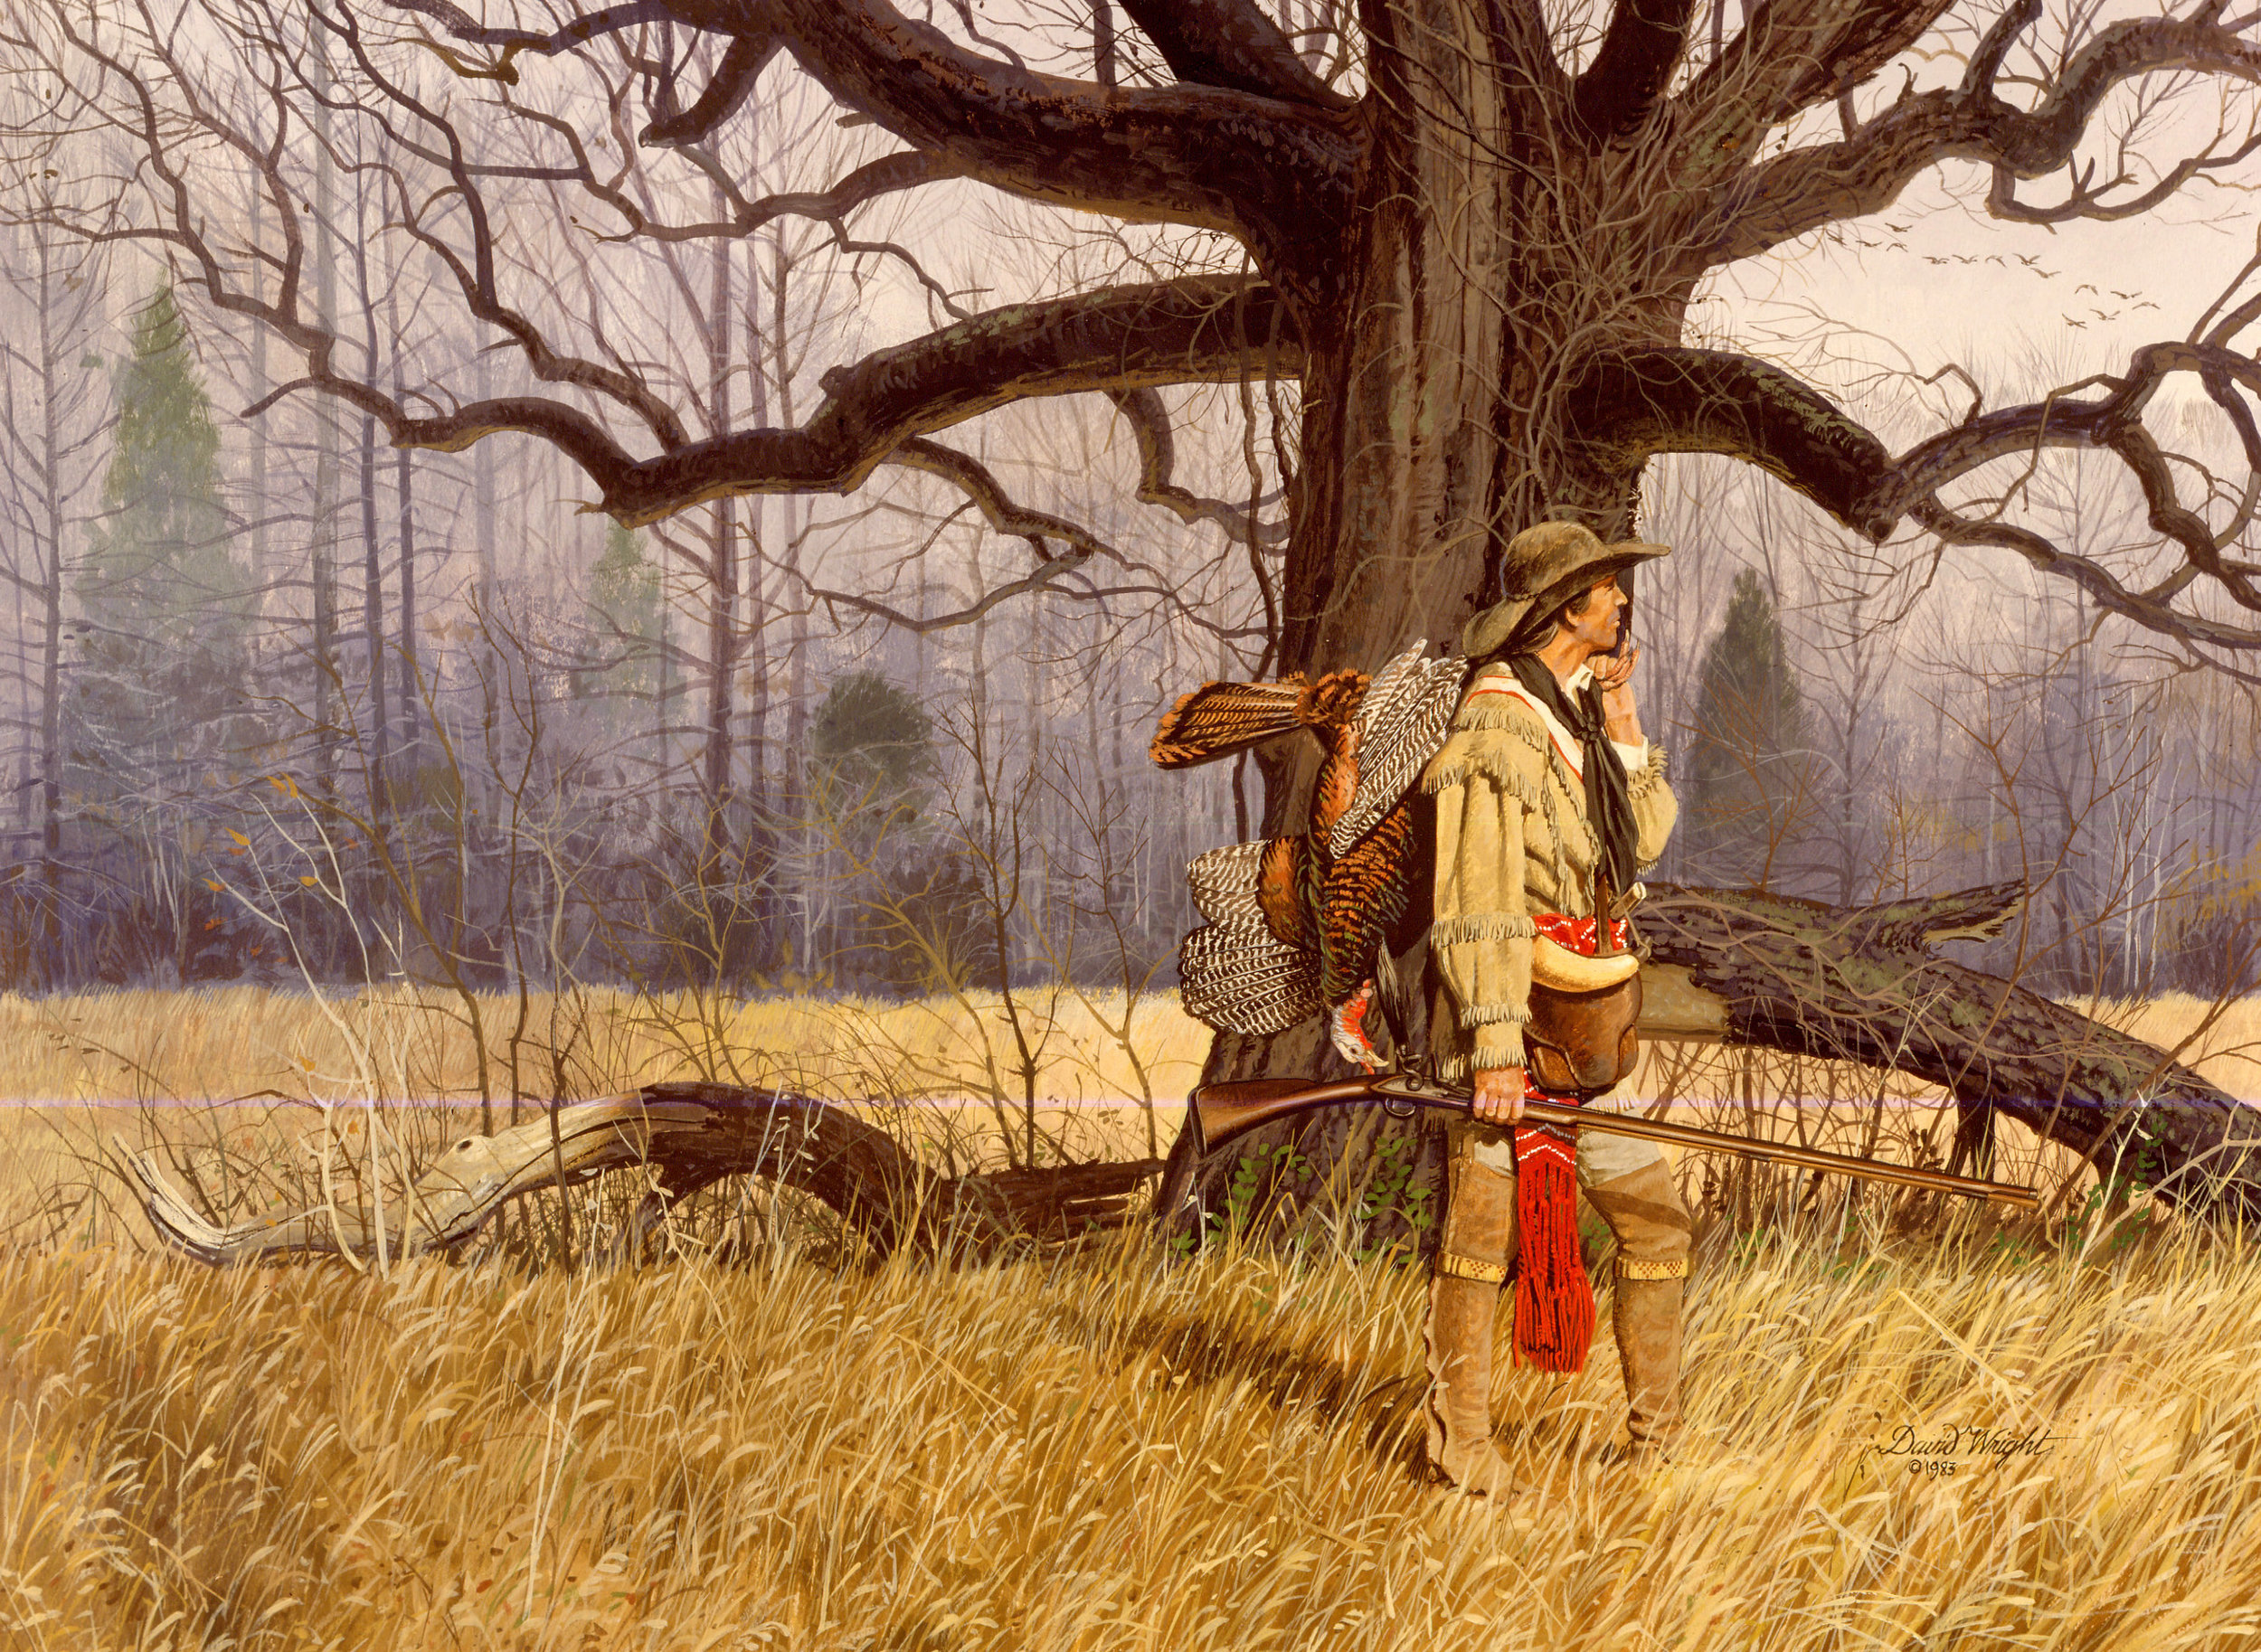 This painting by local artist David Wright depicts the early longhunters who ventured into the Nashville area in the 1770s. It shows the mosaic landscape that would have existed with scattered forests as in the background and open meadows and savannas shown in the foreground. The original composition of these meadows is not well known and no intact examples are known to exist.